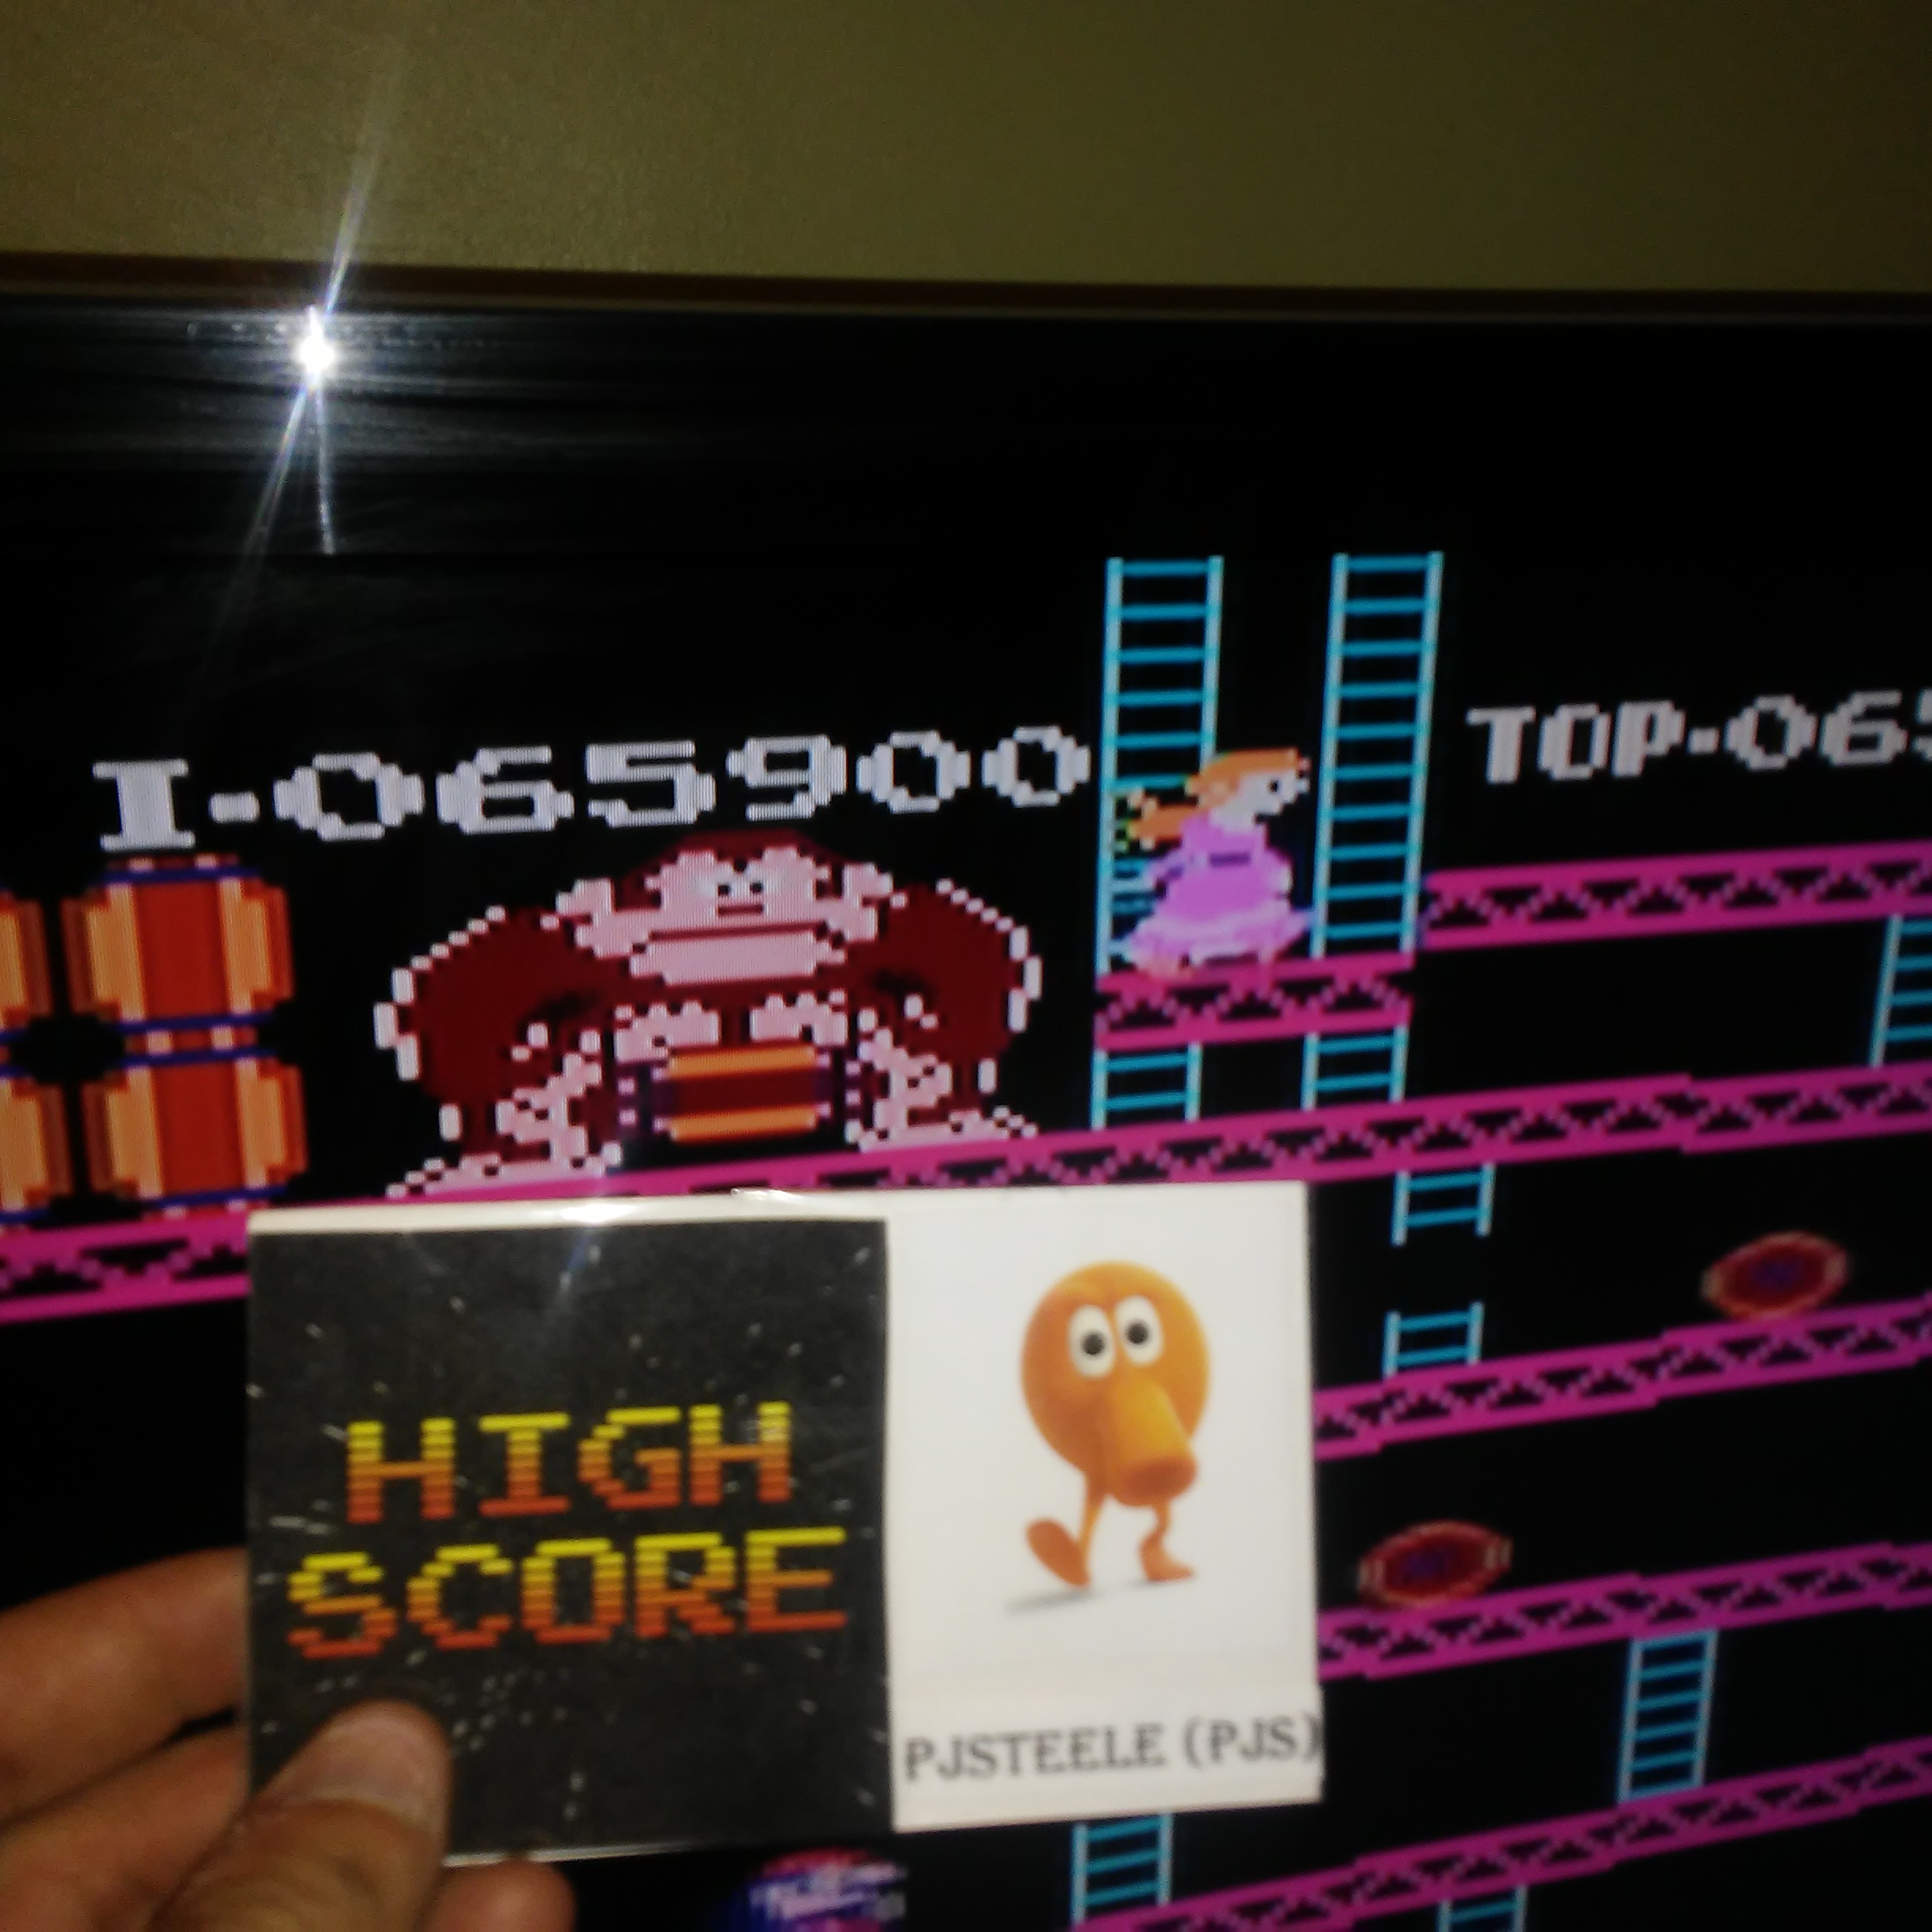 Donkey Kong Original Edition [Game A] 65,900 points